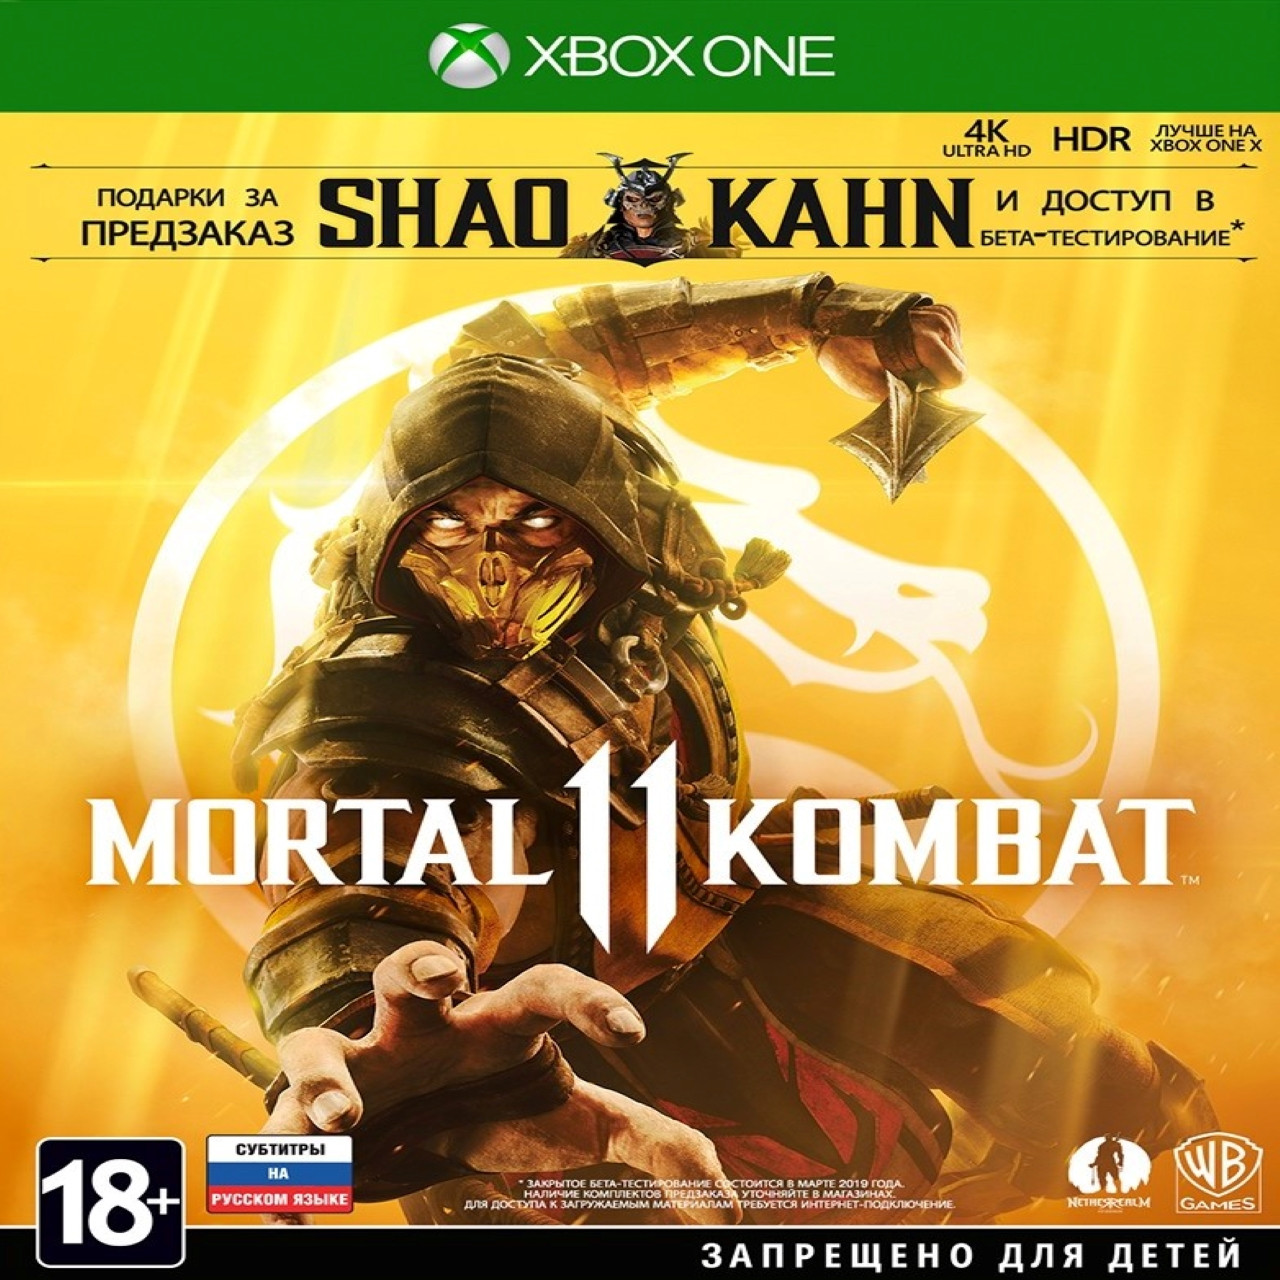 Mortal Kombat 11 SUB XBOX ONE